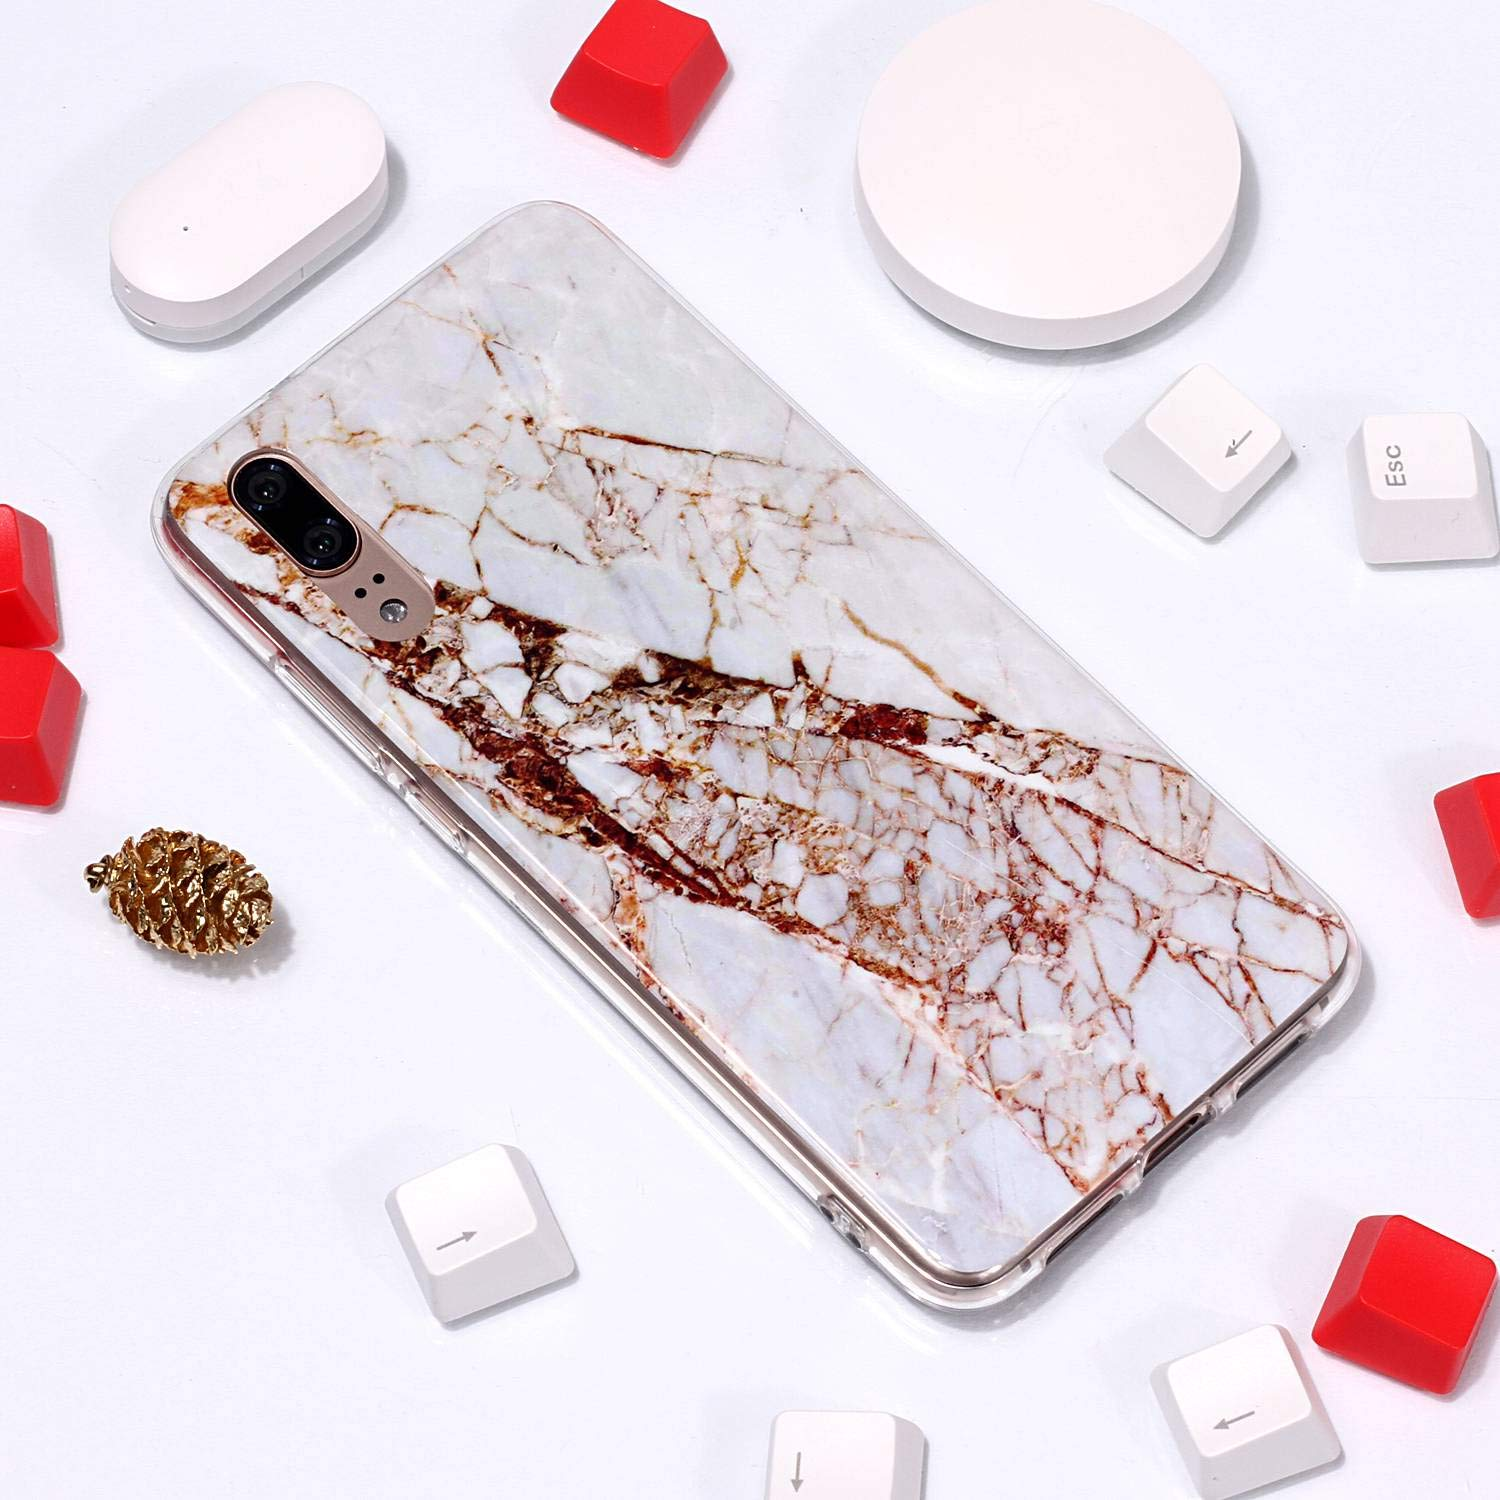 for Huawei P20 Marble Case with Screen Protector,Unique Pattern Design Skin Ultra Thin Slim Fit Soft Gel Silicone Case,QFFUN Shockproof Anti-Scratch Protective Back Cover - White by QFFUN (Image #4)